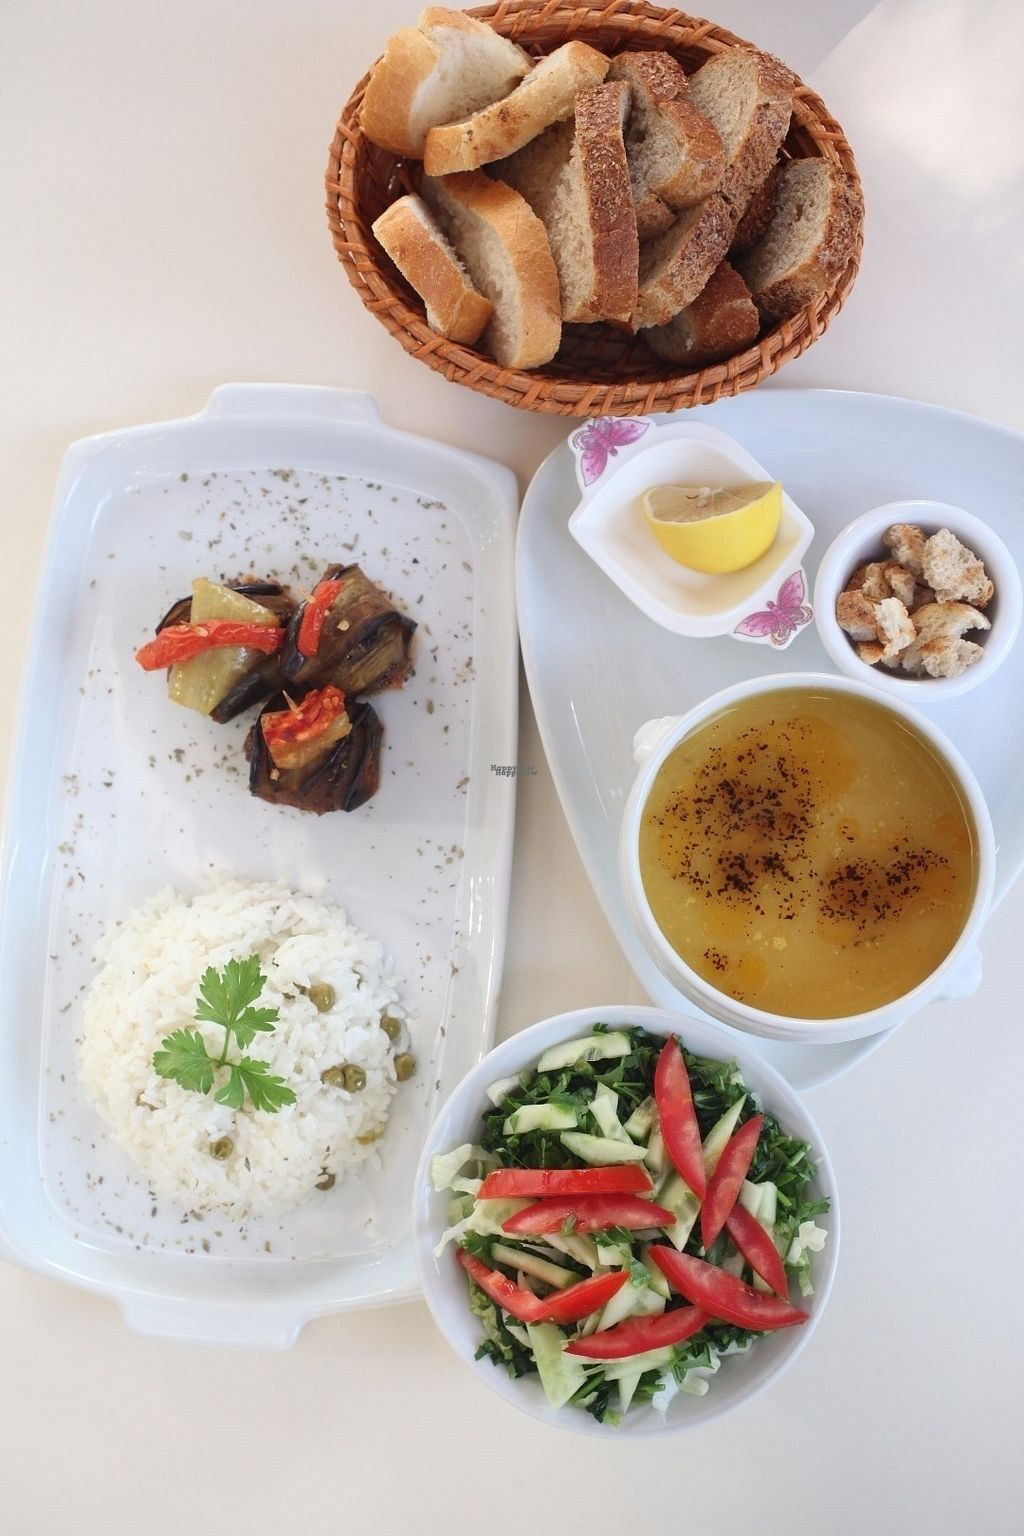 """Photo of CLOSED: Vegihi  by <a href=""""/members/profile/Lkyrk"""">Lkyrk</a> <br/>Example to a lunch menu in Vegihi: Soap of the day, İslim Kebap with vegan veggieballs, pea rice, salad and homemade bread.  <br/> October 23, 2016  - <a href='/contact/abuse/image/80619/183965'>Report</a>"""